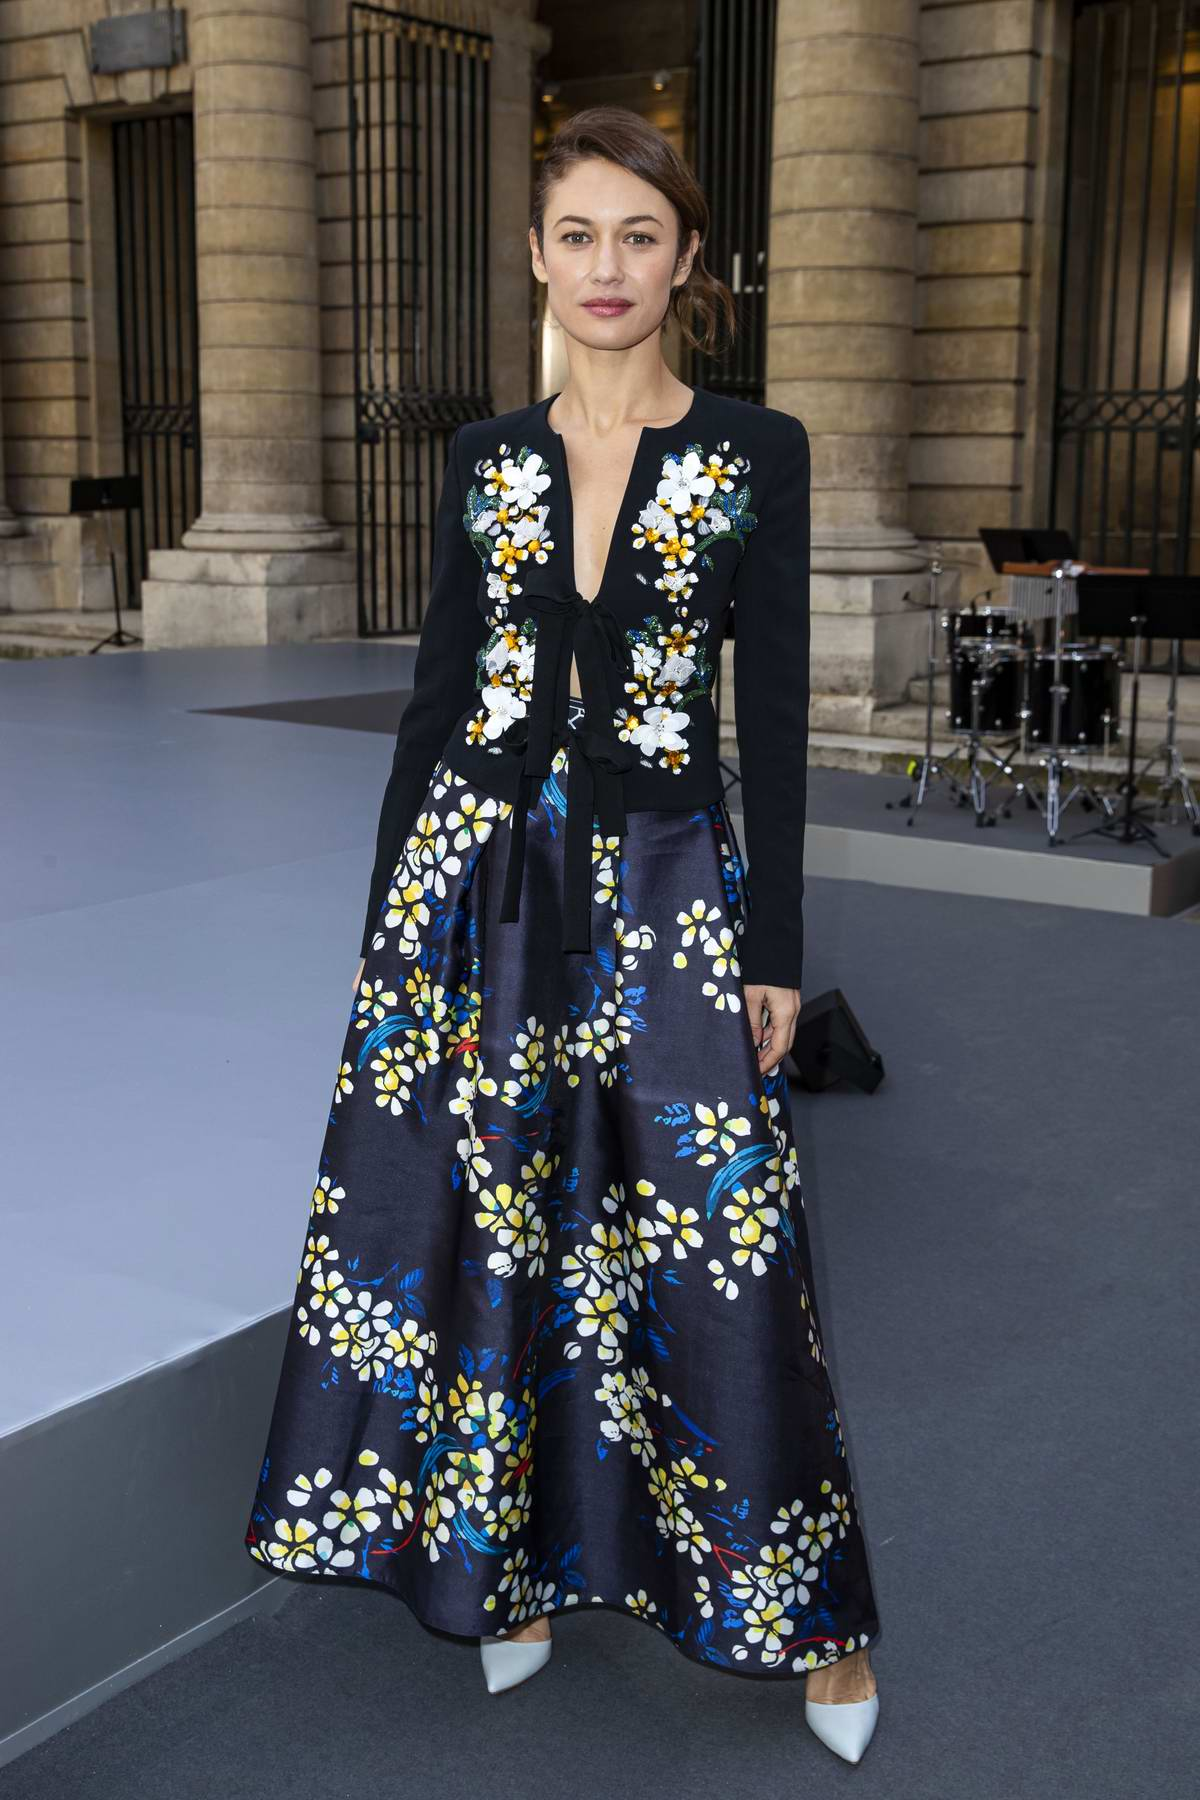 Olga Kurylenko attends the L'Oreal Paris Spring/Summer 2020 show during Paris Fashion Week in Paris, France